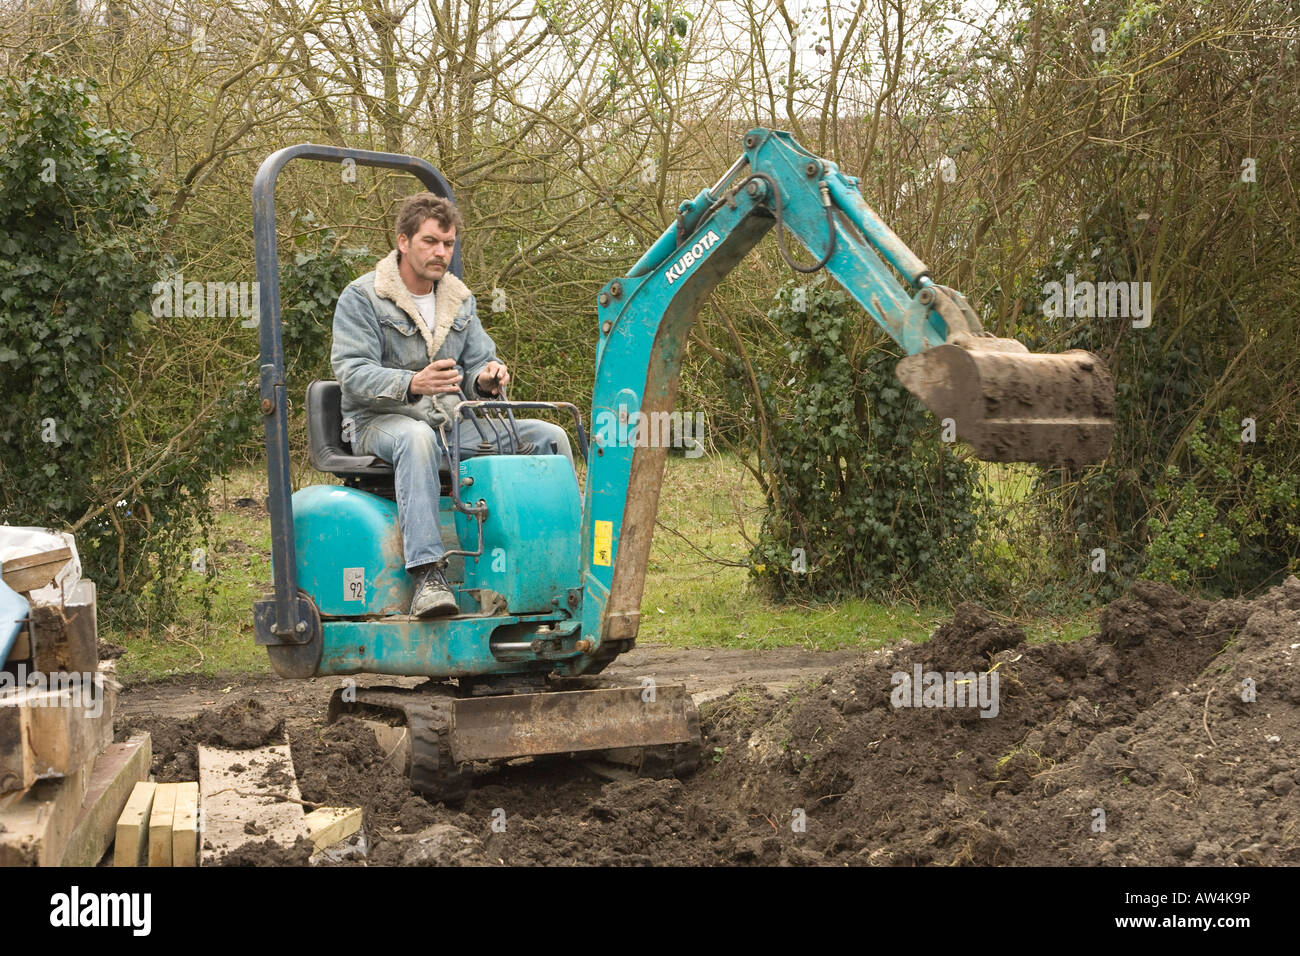 Man On Bulldozer : A man driving mini digger excavator stock photo